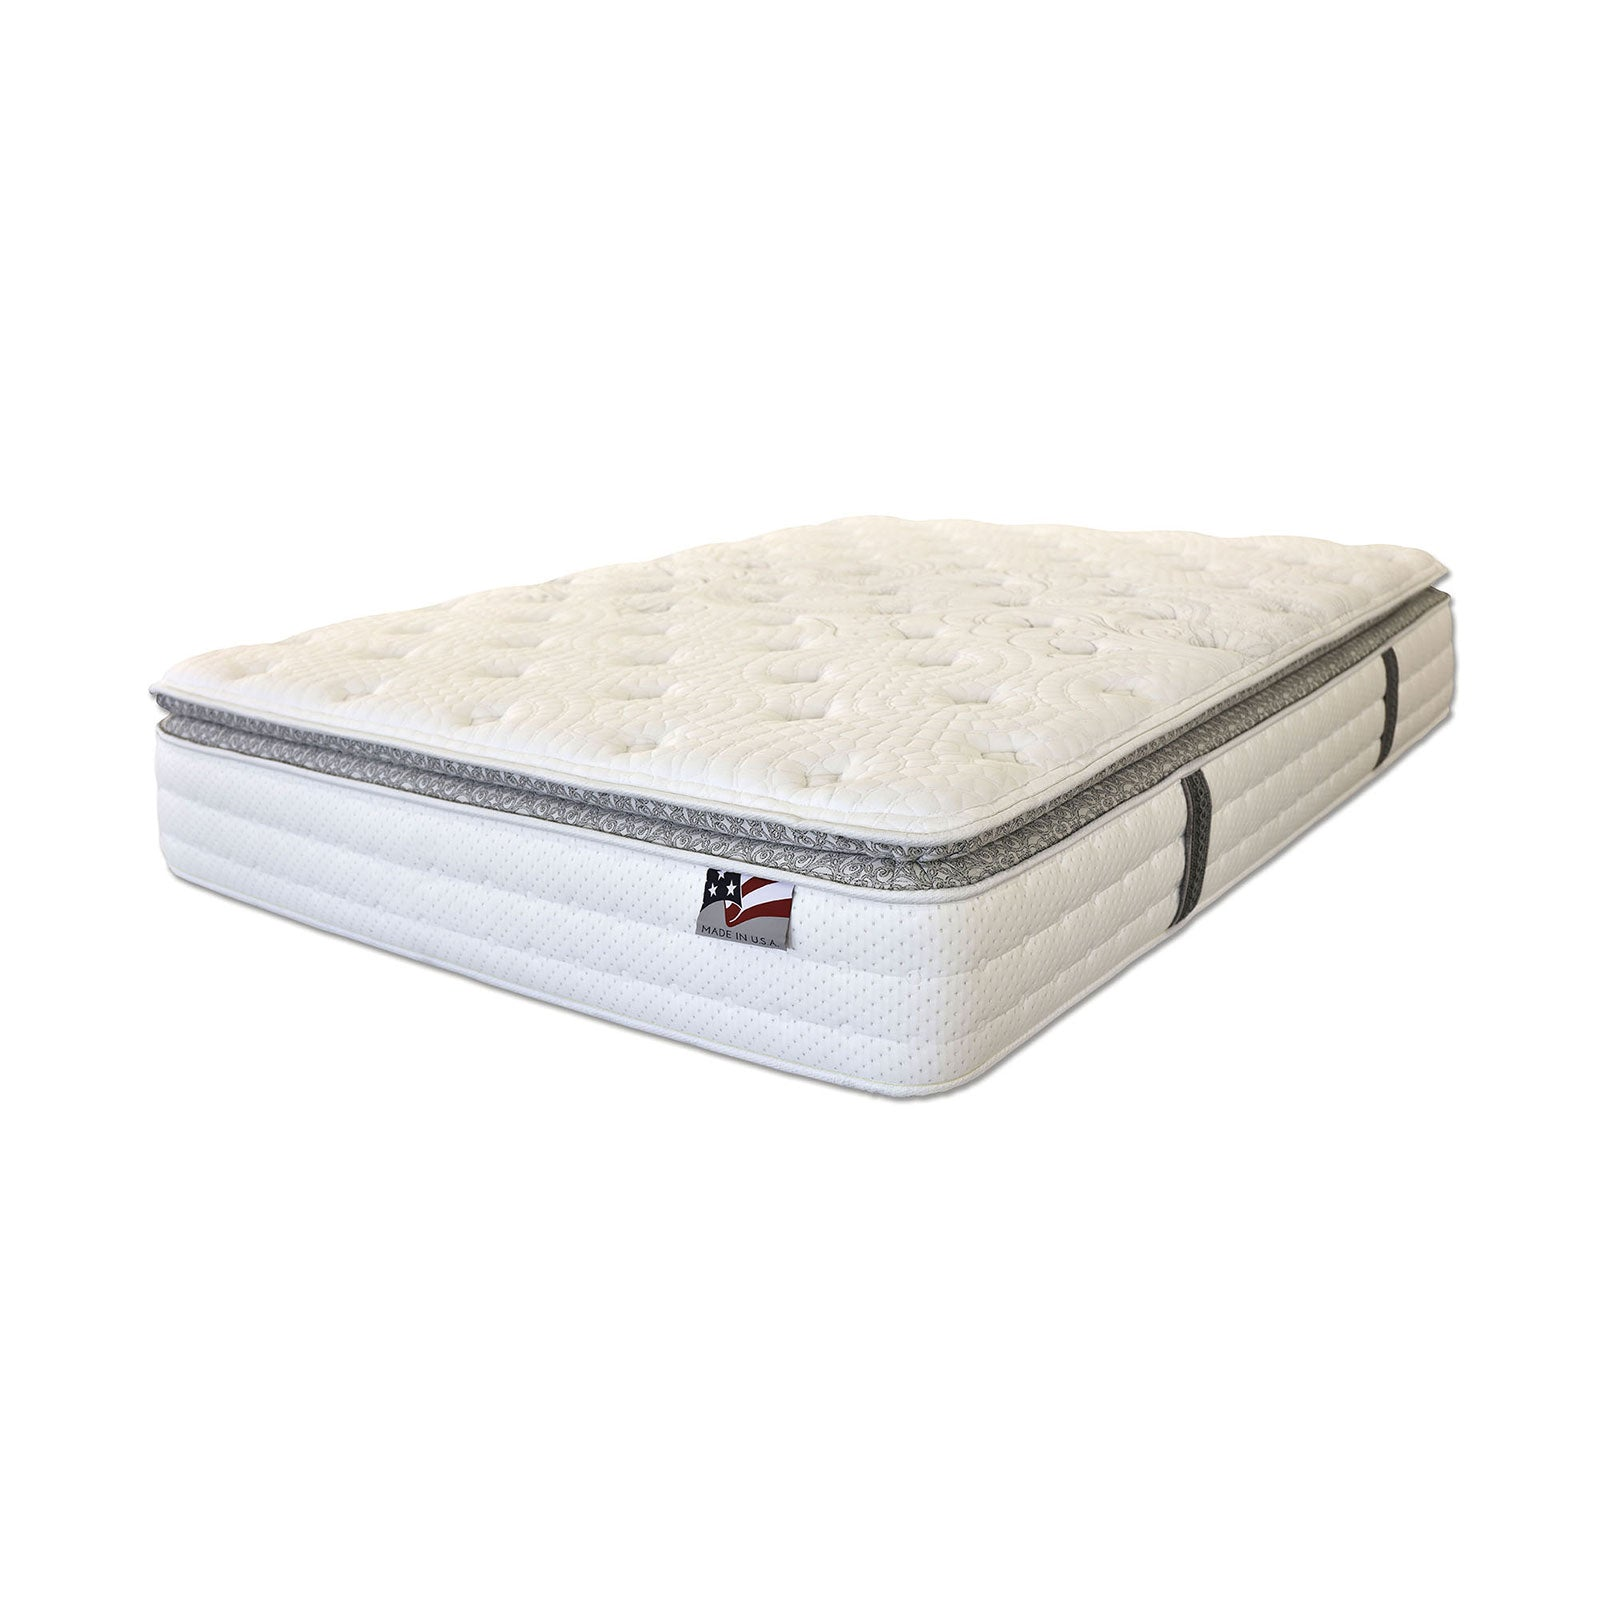 "ALYSSUM II Pillow Top W- Mem Foam 14"" Pillow Top Mattress, E.King - InteriorDesignsToGo.com"